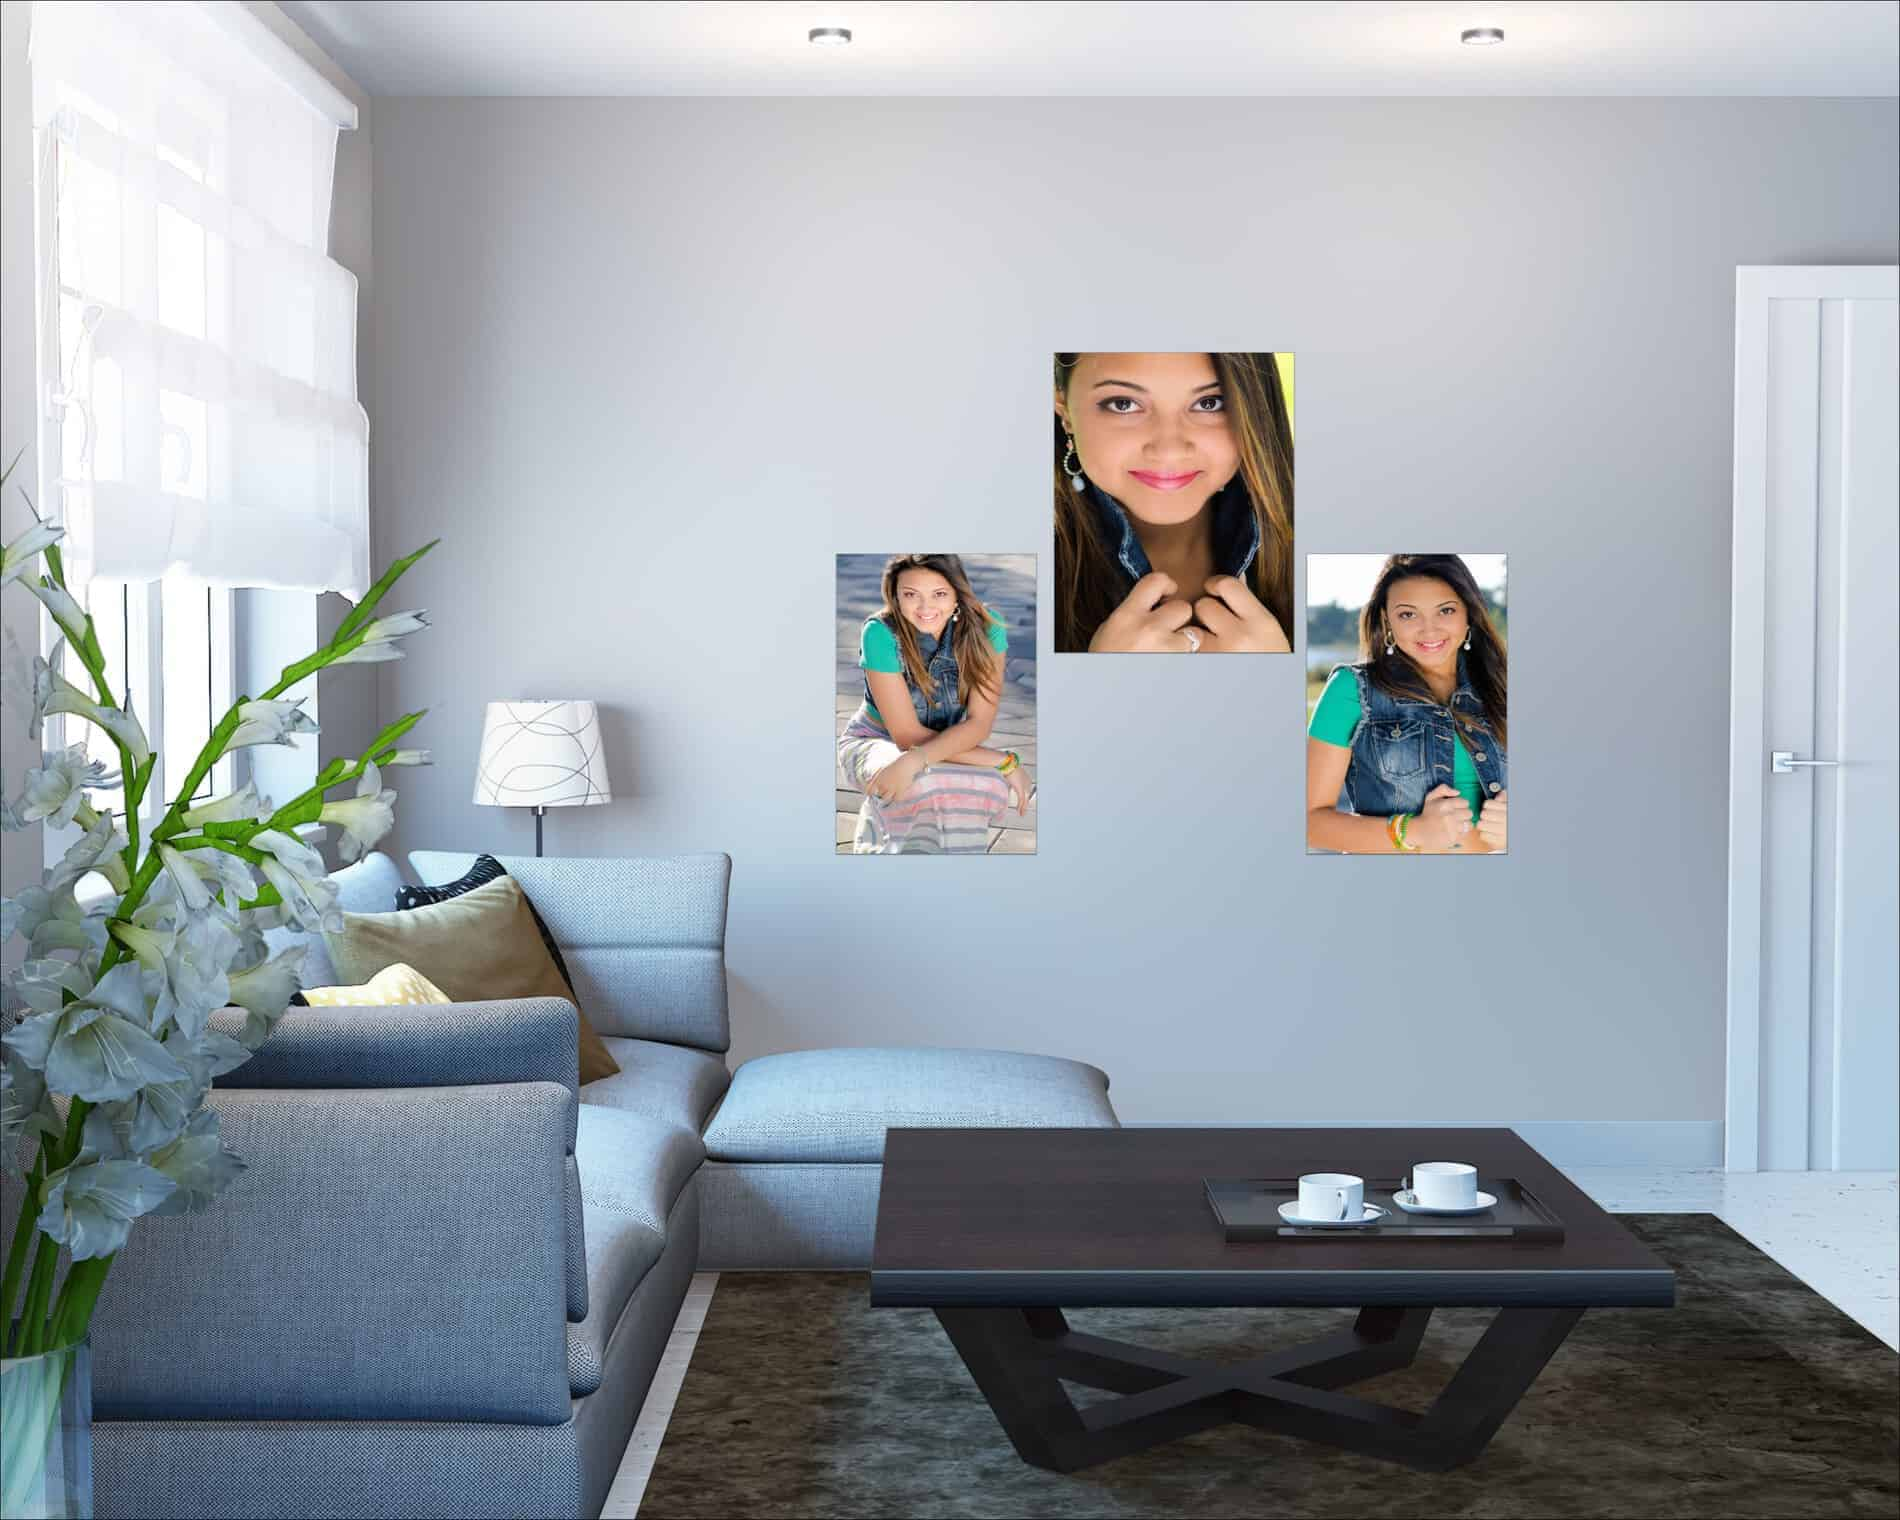 Outdoor Teen Portraits on a living room wall